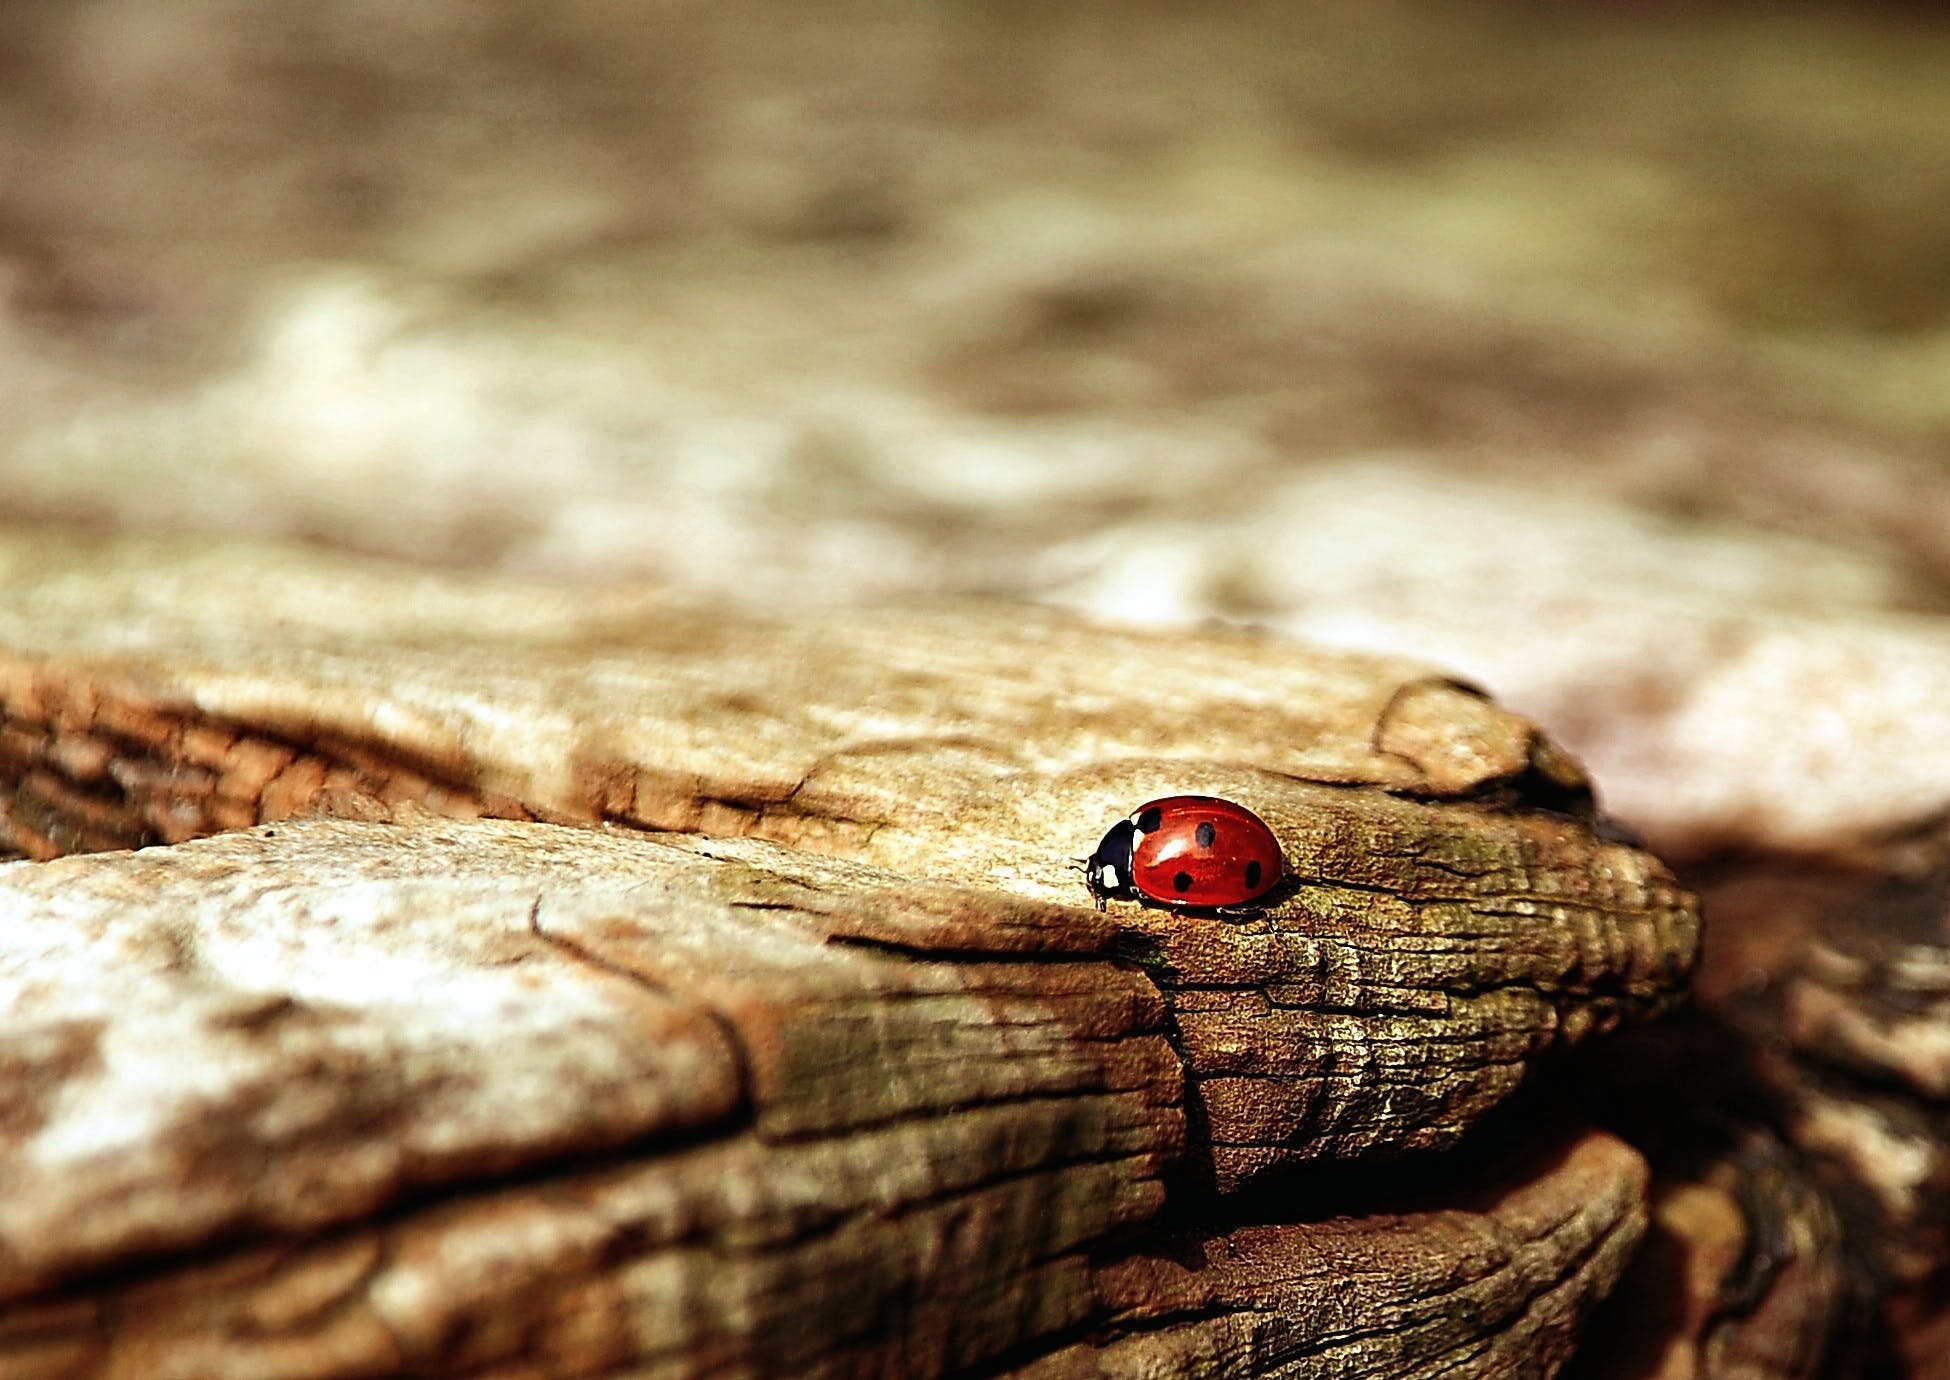 Lady Bug Above the Brown Wood in Macro Photography